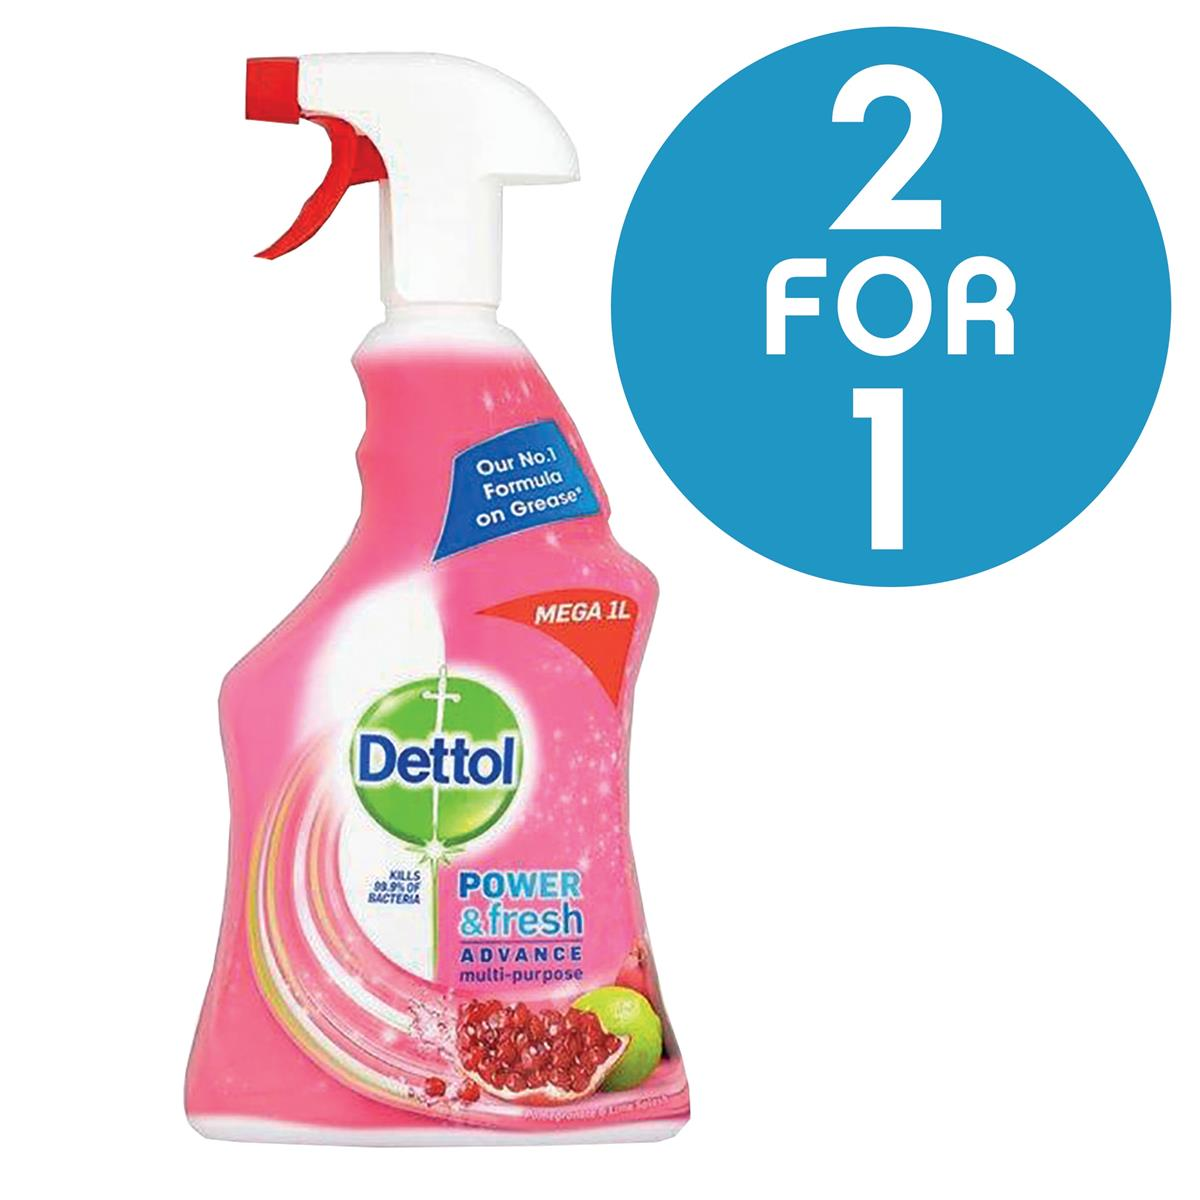 Dettol Power Fresh Pomegranate Antibacterial Cleaner Trigger Spray 1 Litre Ref 3007938 [2 For 1] Jan 2018